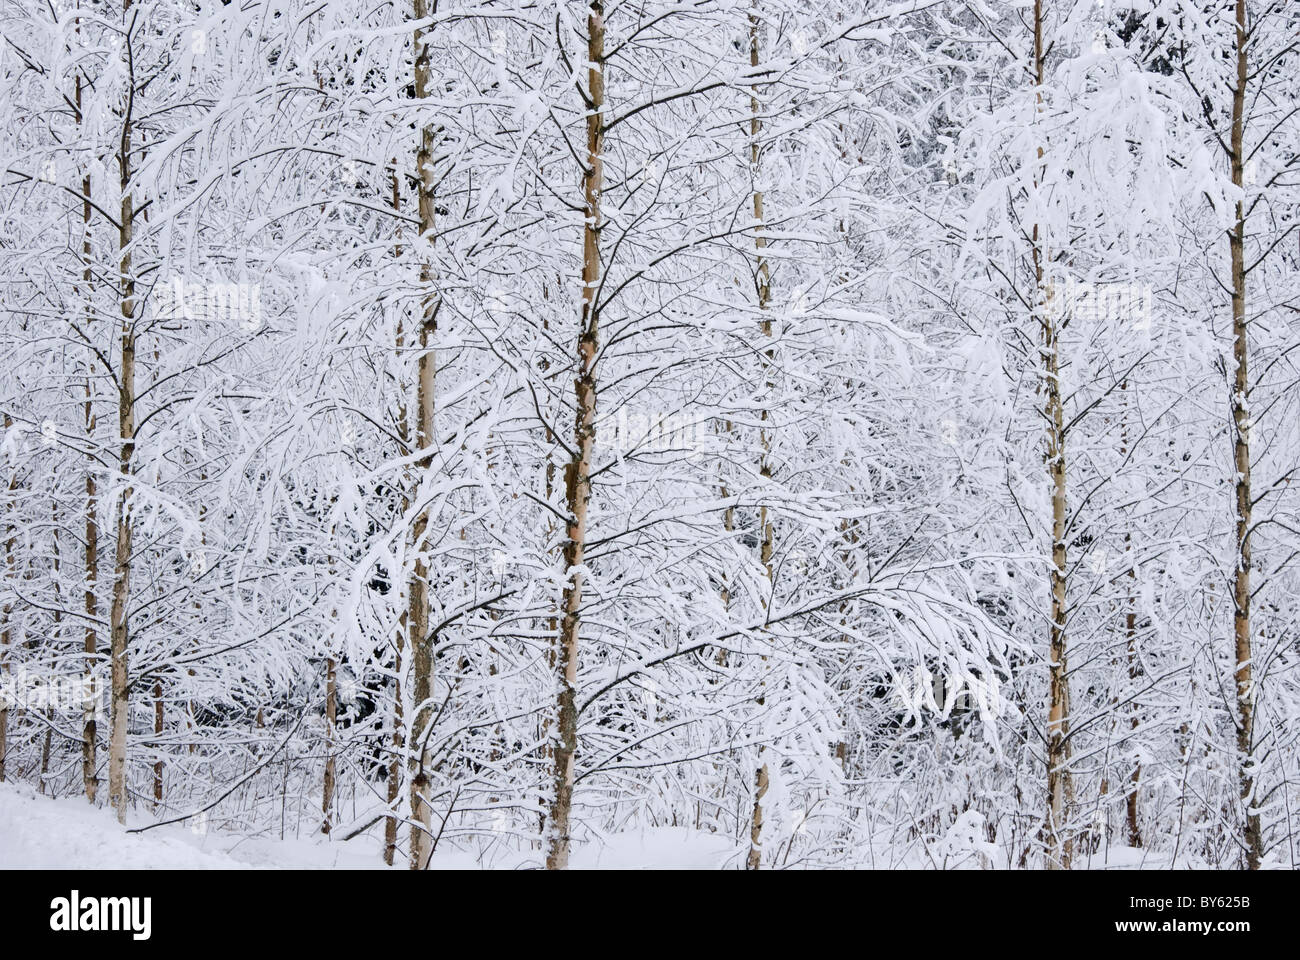 Frost Covered Birch Trees in Snowy Hollola Finland Stock Photo